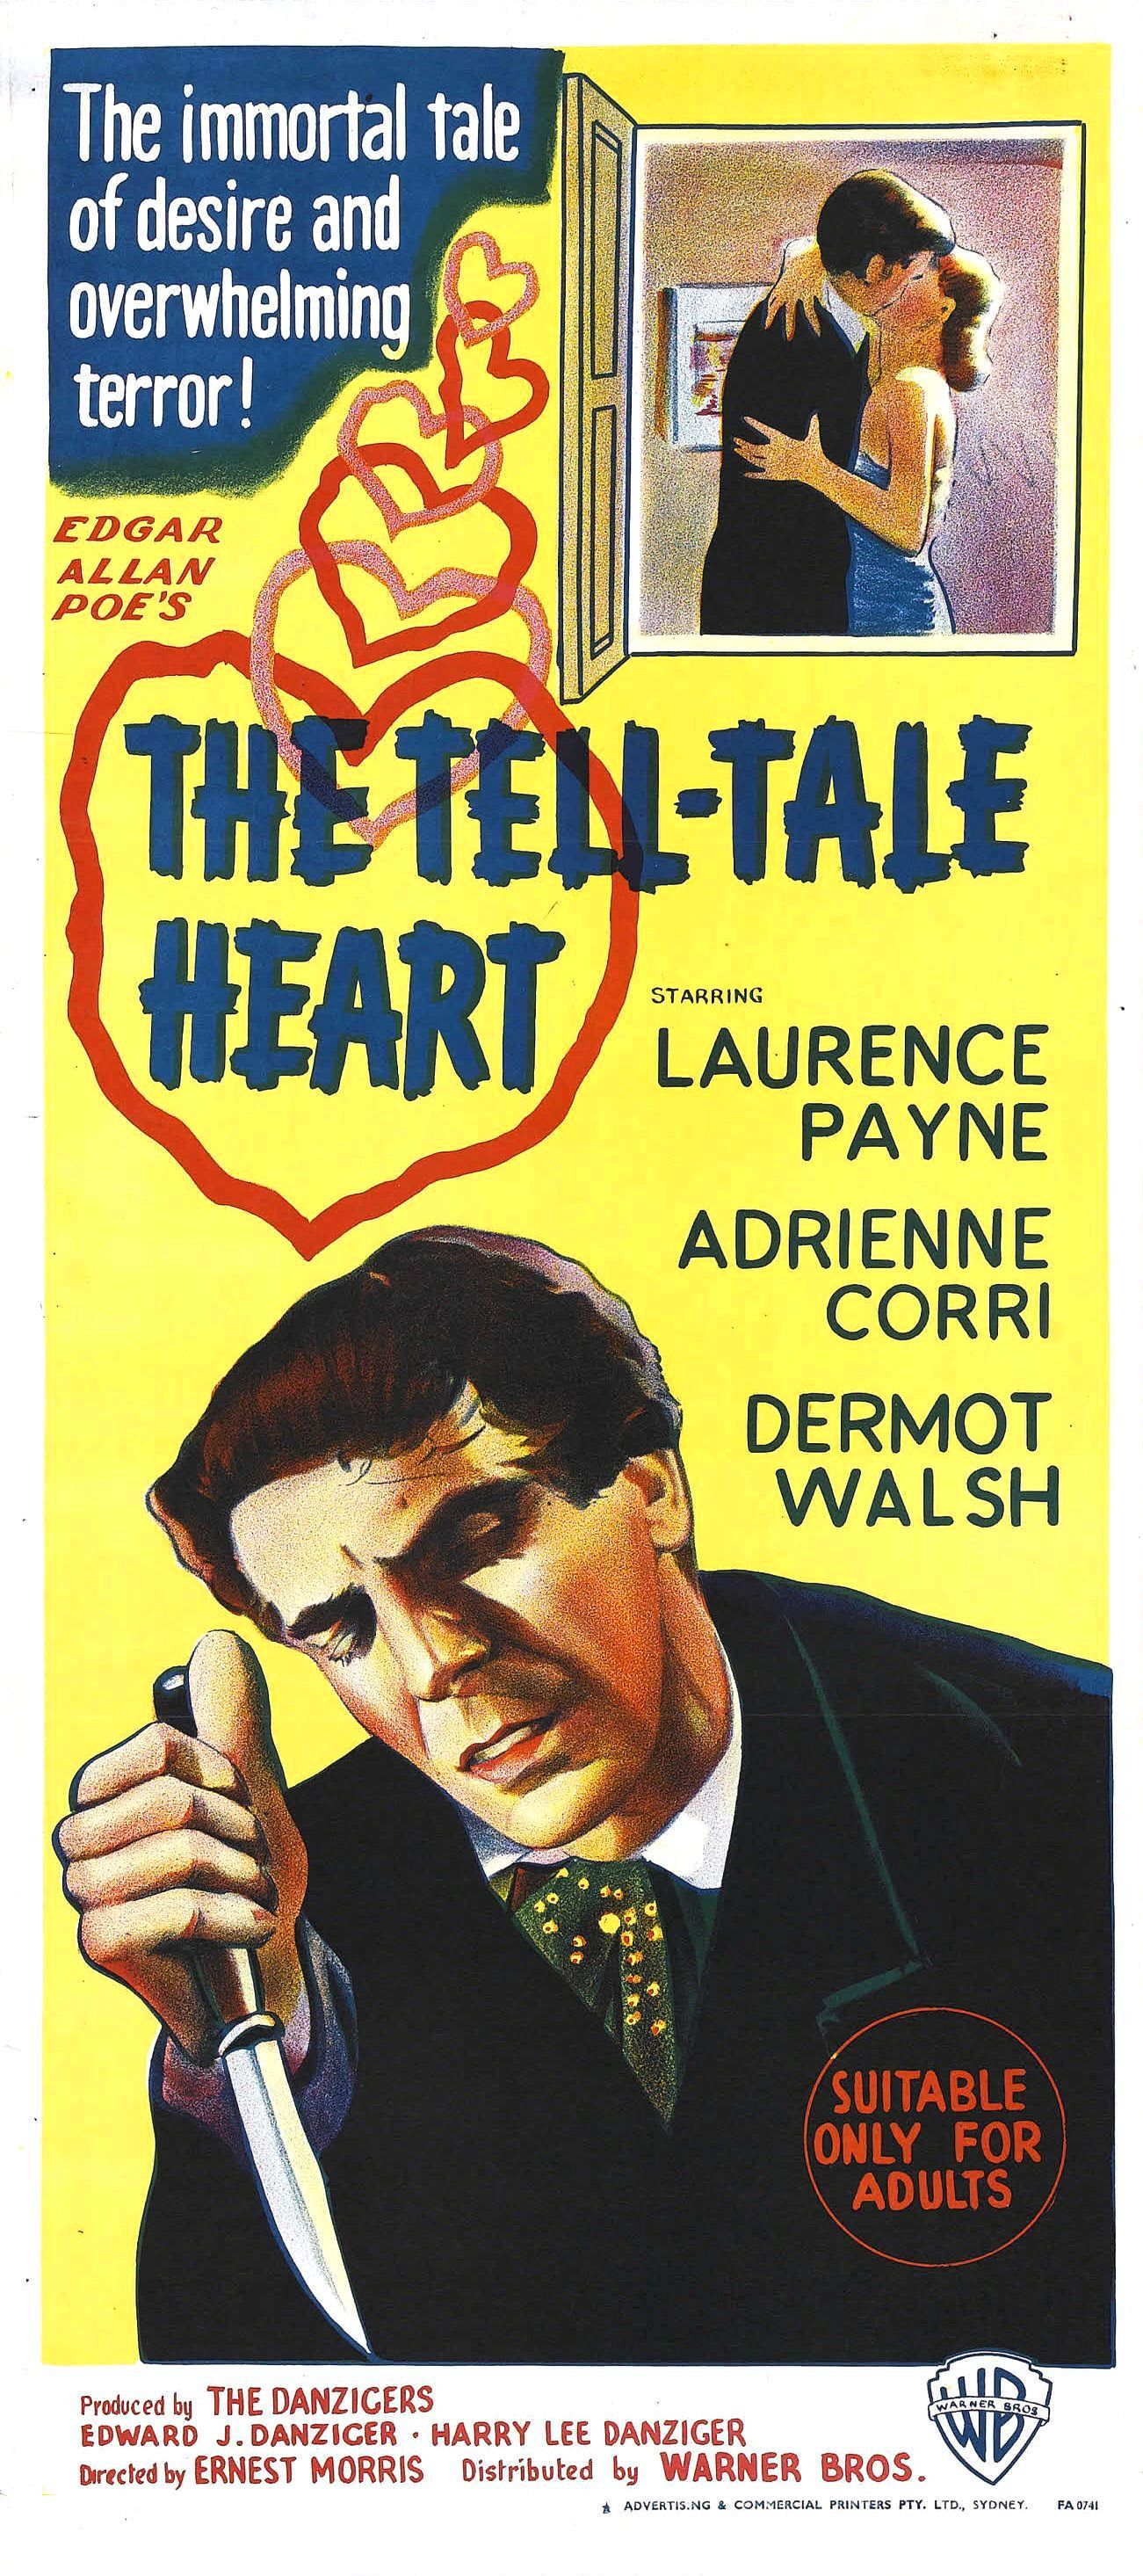 an analysis of the film version of edgar allan poes the tell tale heart Analysis of edgar allan poe's the tell tale heart essay 941 words | 4 pages edgar allan poe, whose personal torment so powerfully informed his visionary prose and.